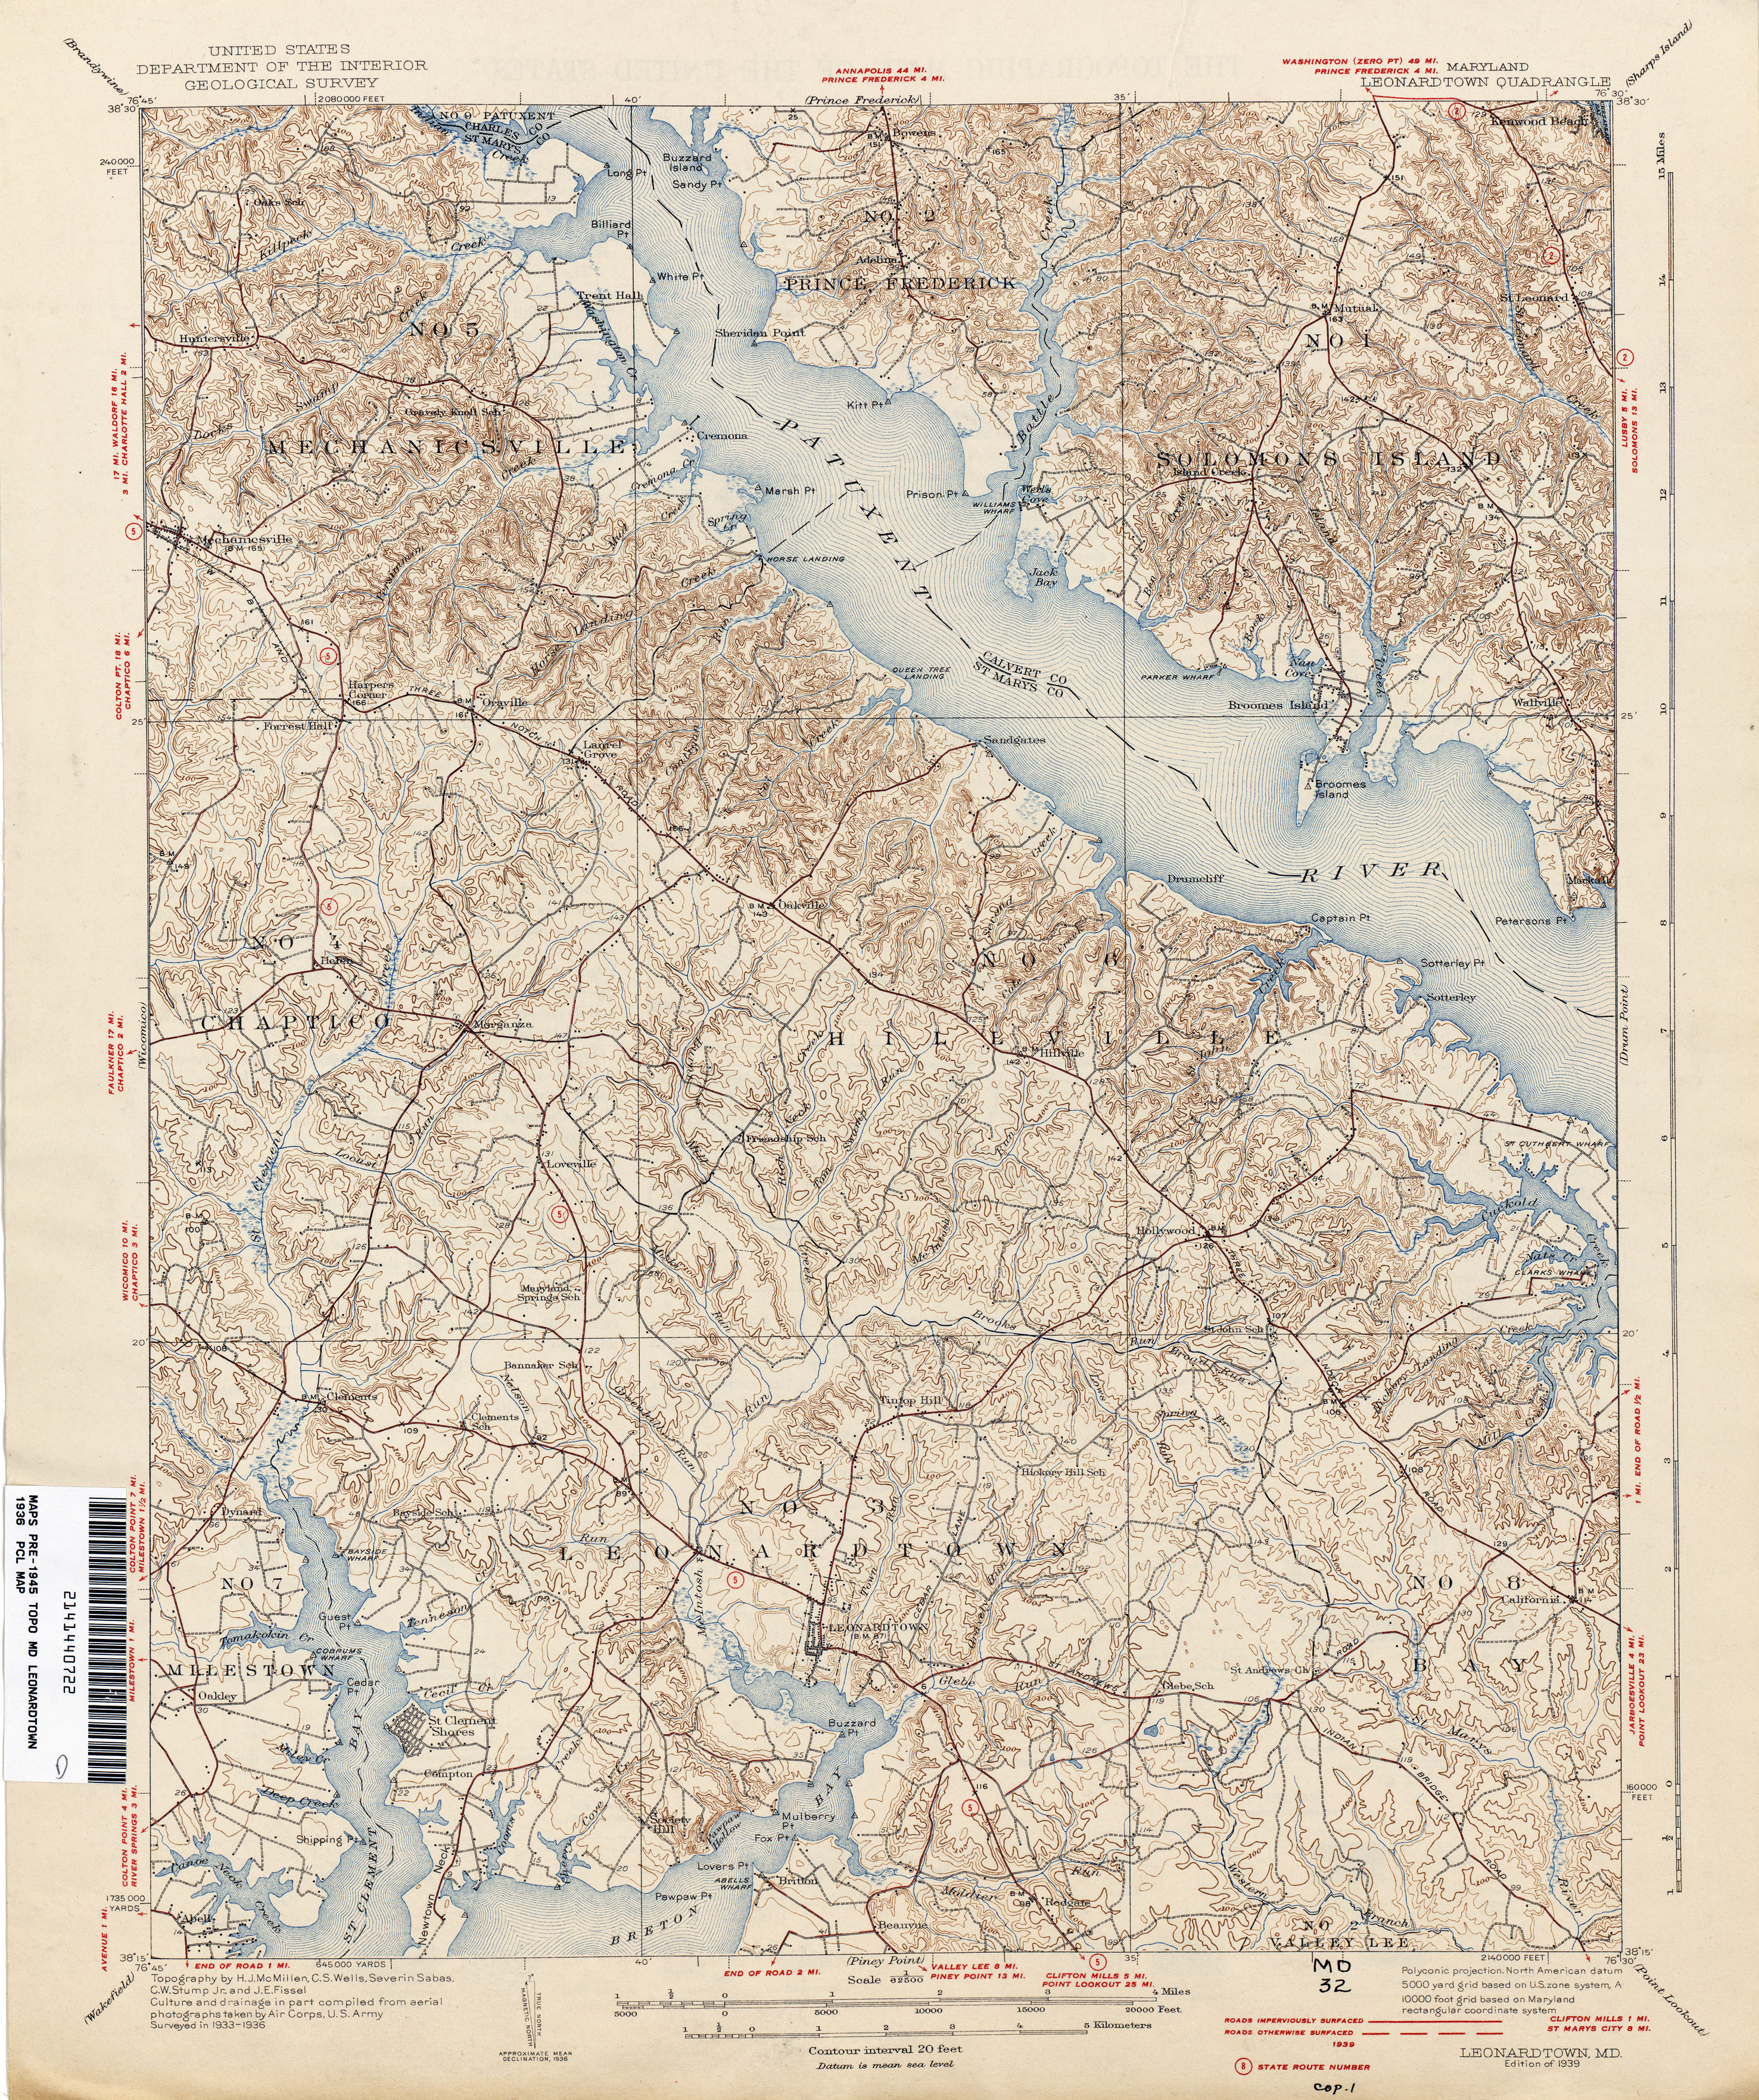 Maryland Historical Topographic Maps